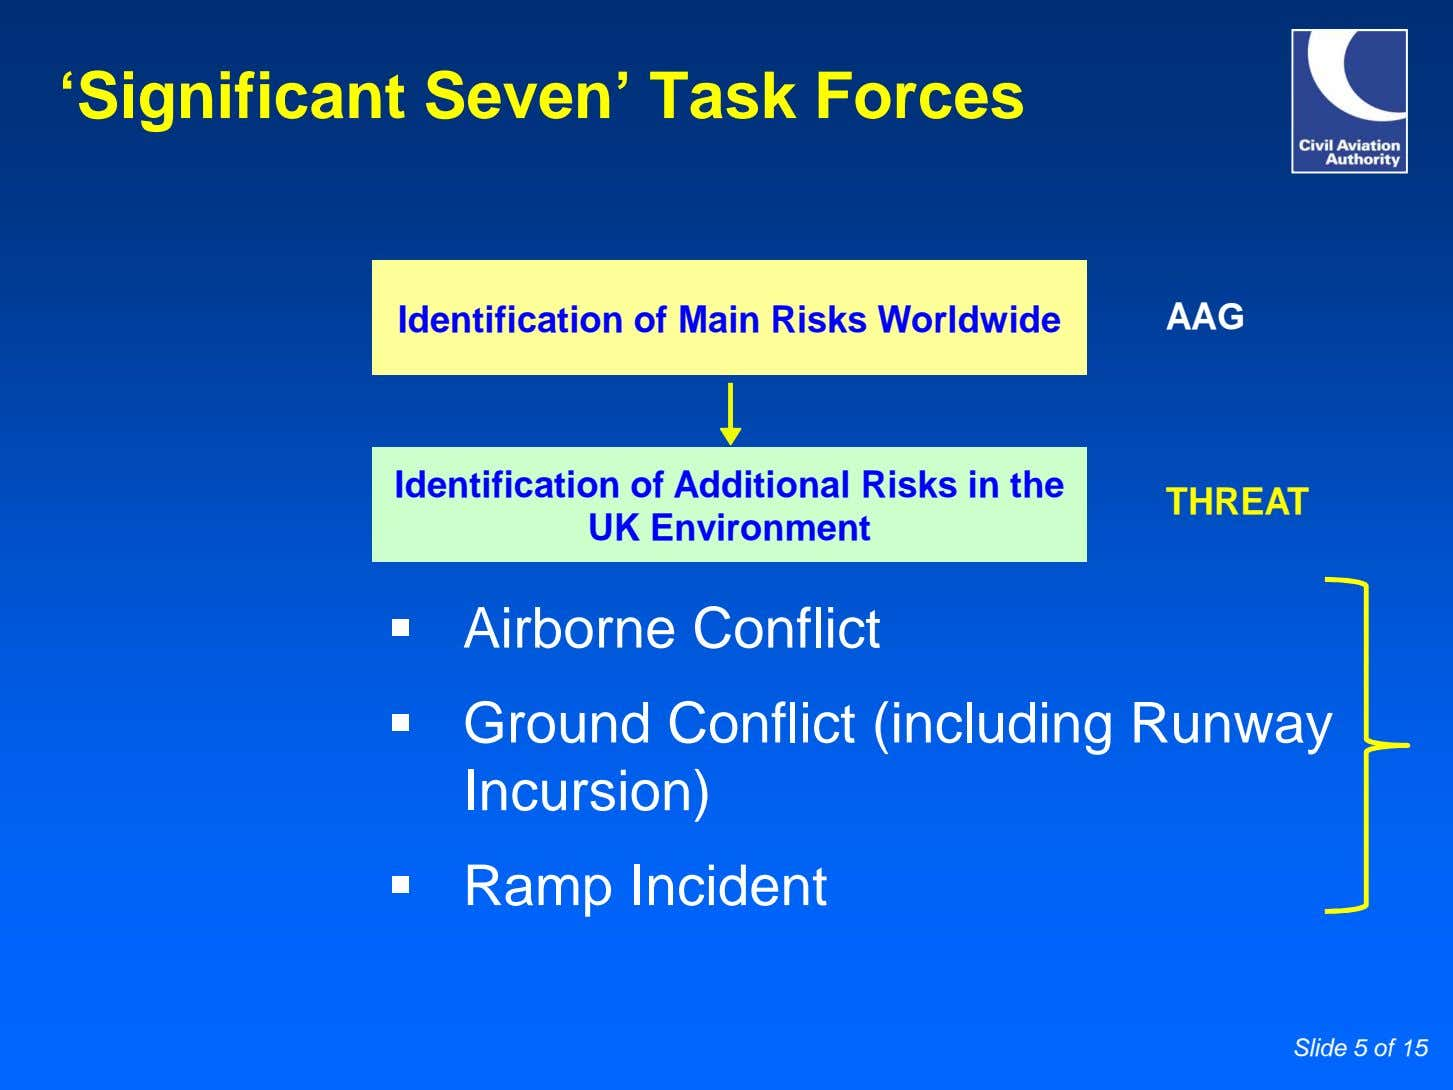 'Significant Seven' Task Forces Identification of Main Risks Worldwide AAG Identification of Additional Risks in